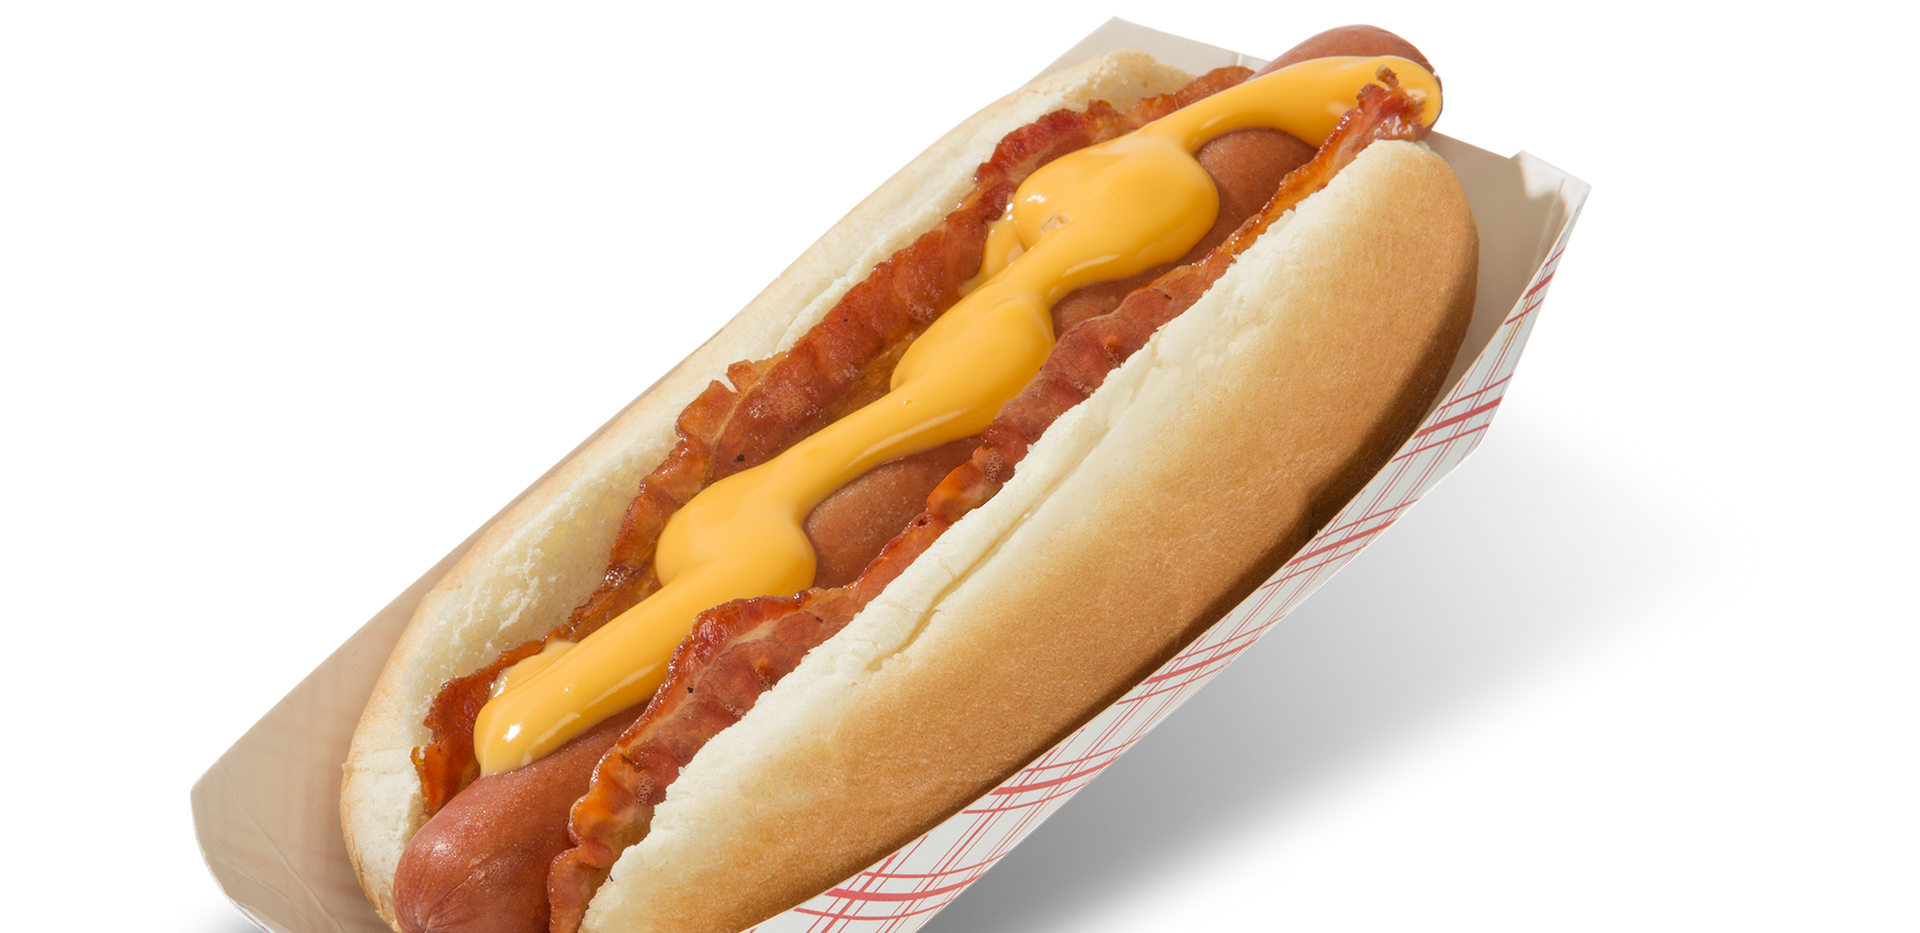 Hot Dog bacon cheese 2.png